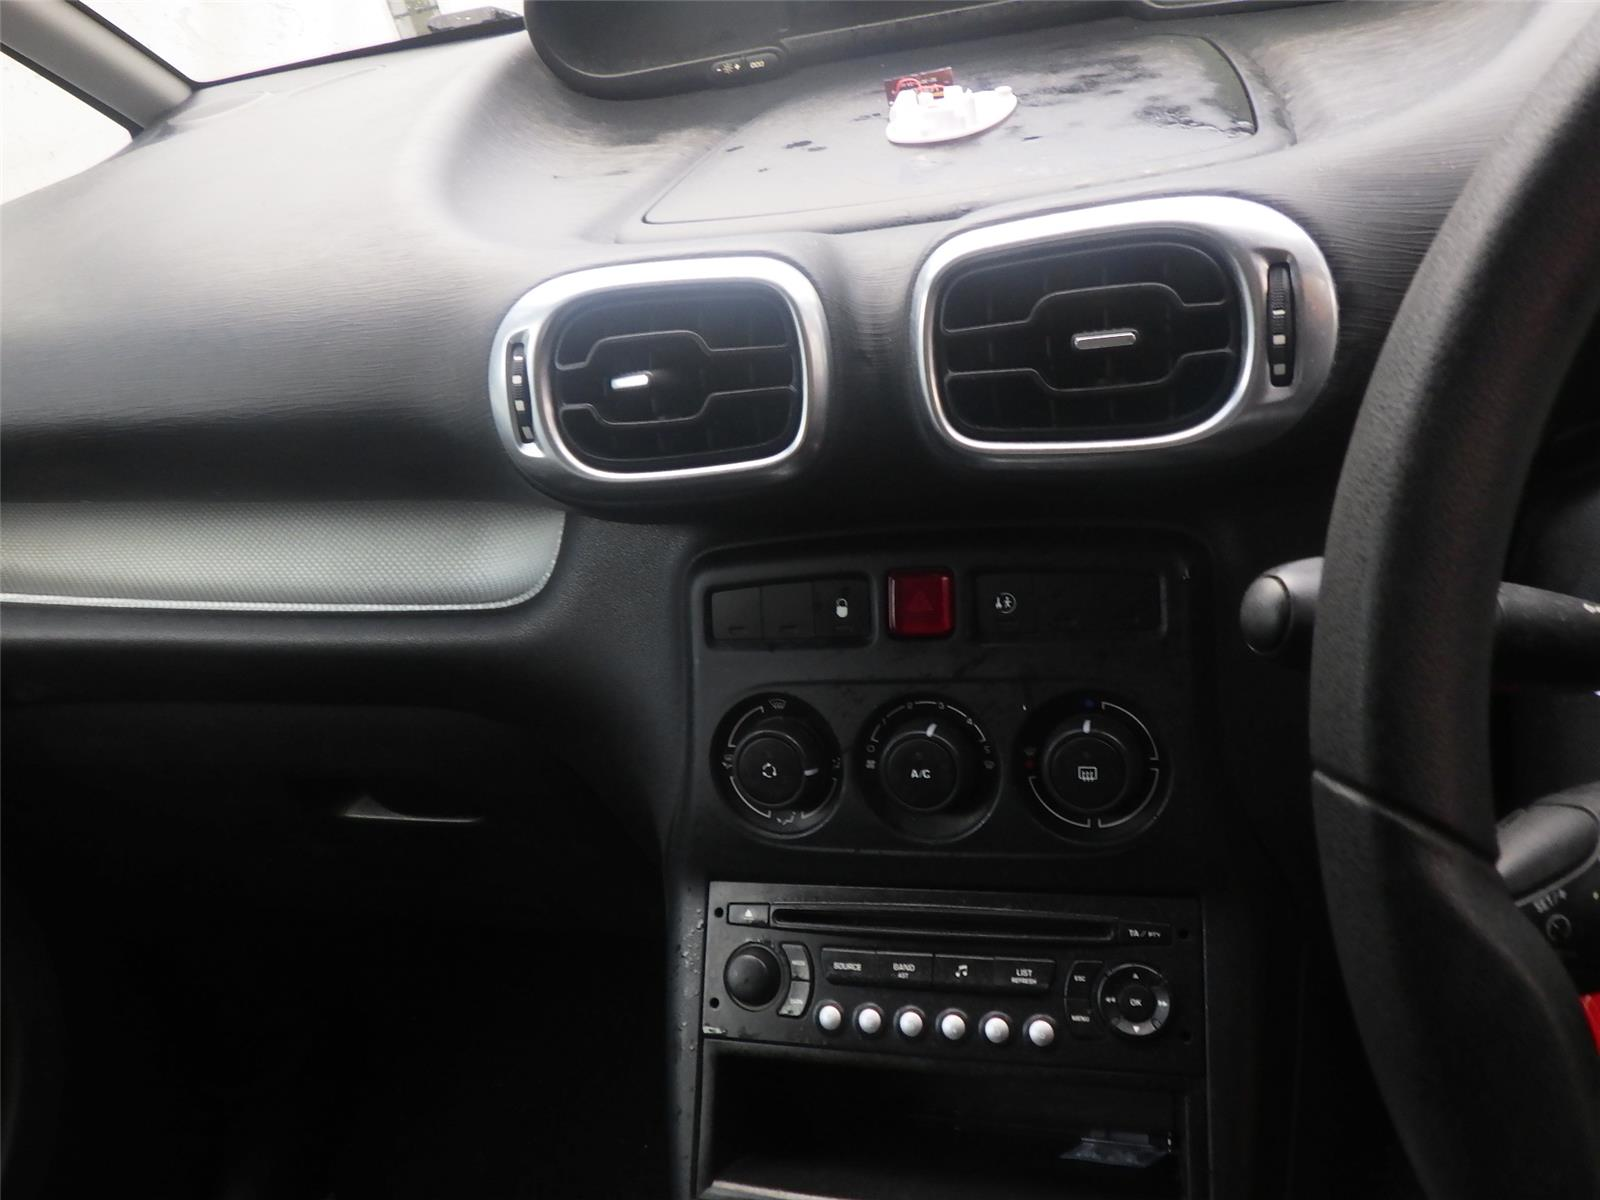 ... 2010 Citroen C3 Picasso 2009 To 2012 VTR+ HDi Manual Diesel RED Car  Radio CD Player ...